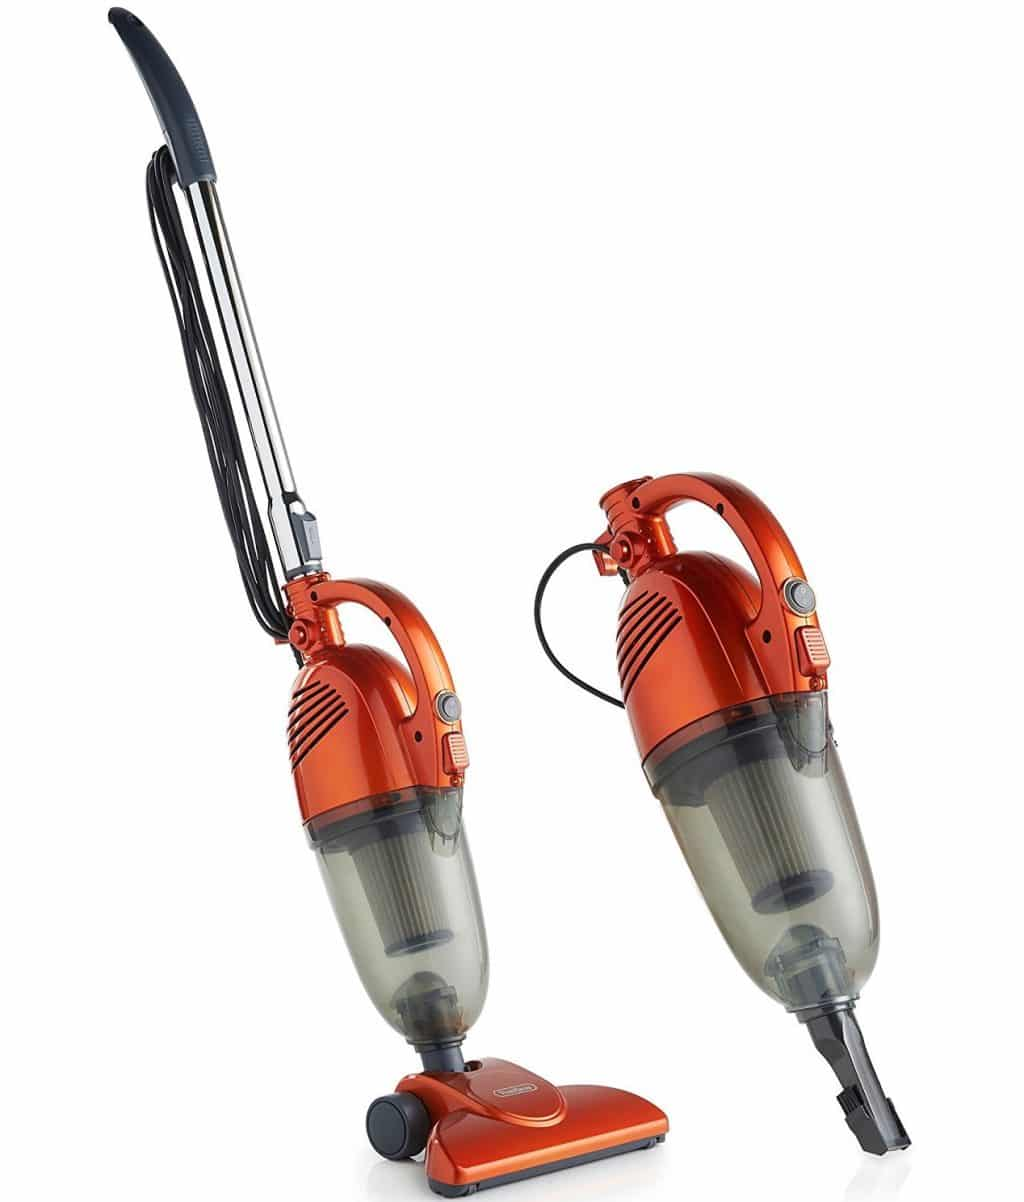 VonHaus 2-in1 Upright & Handheld Vacuum Cleaner